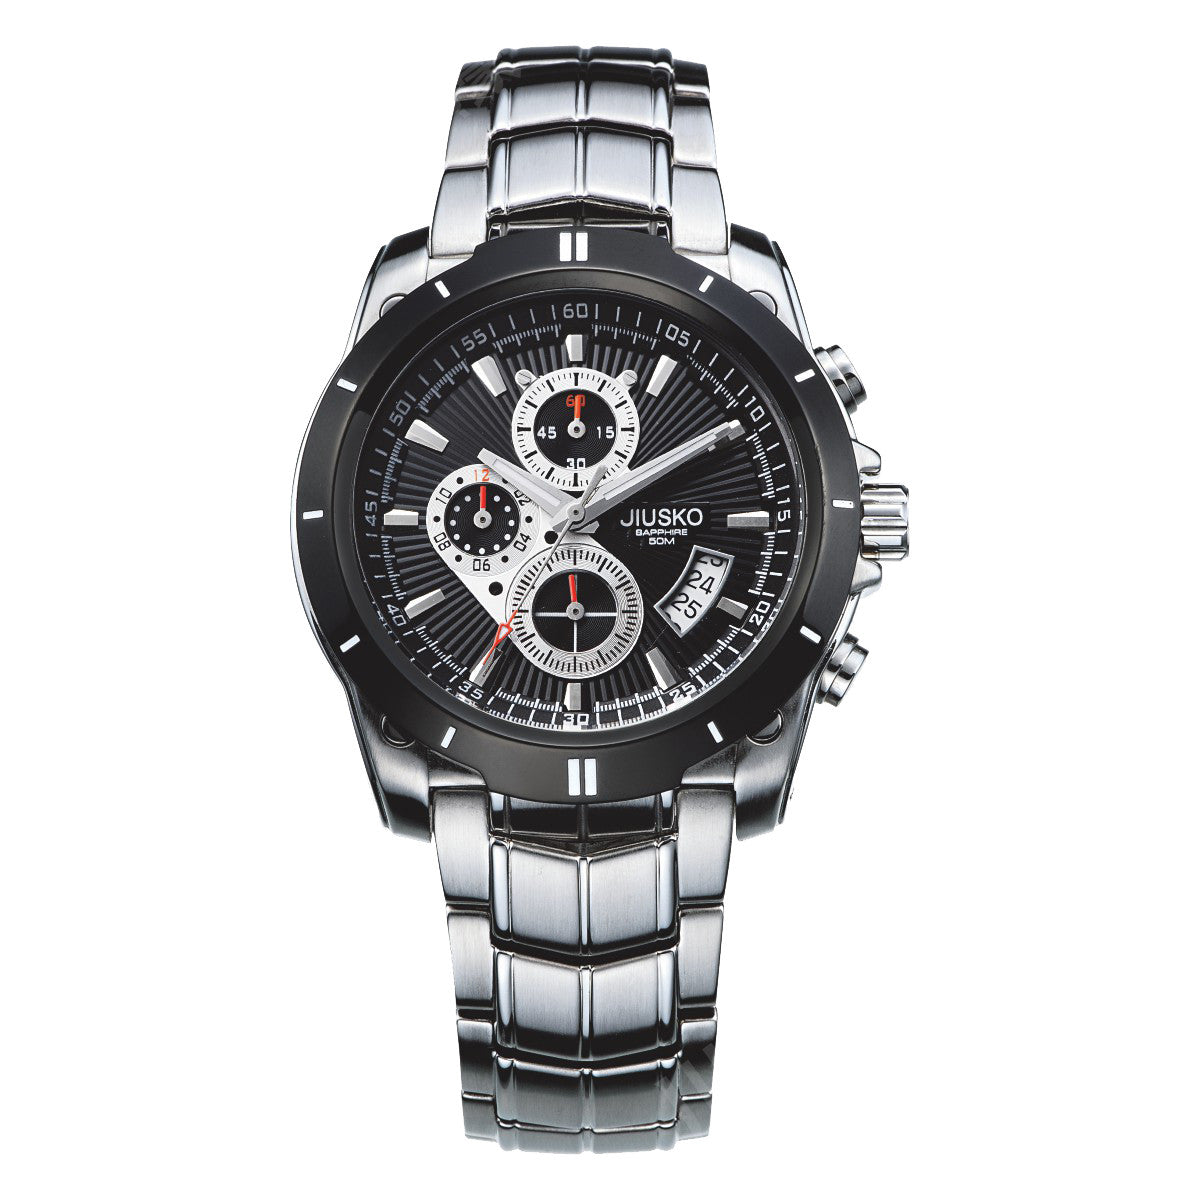 Jiusko Watch,Men's-Sport-Casual-Chronograph-Multi-Function-Quartz-Stainless Steel-Tachymeter-50m-9LSB02